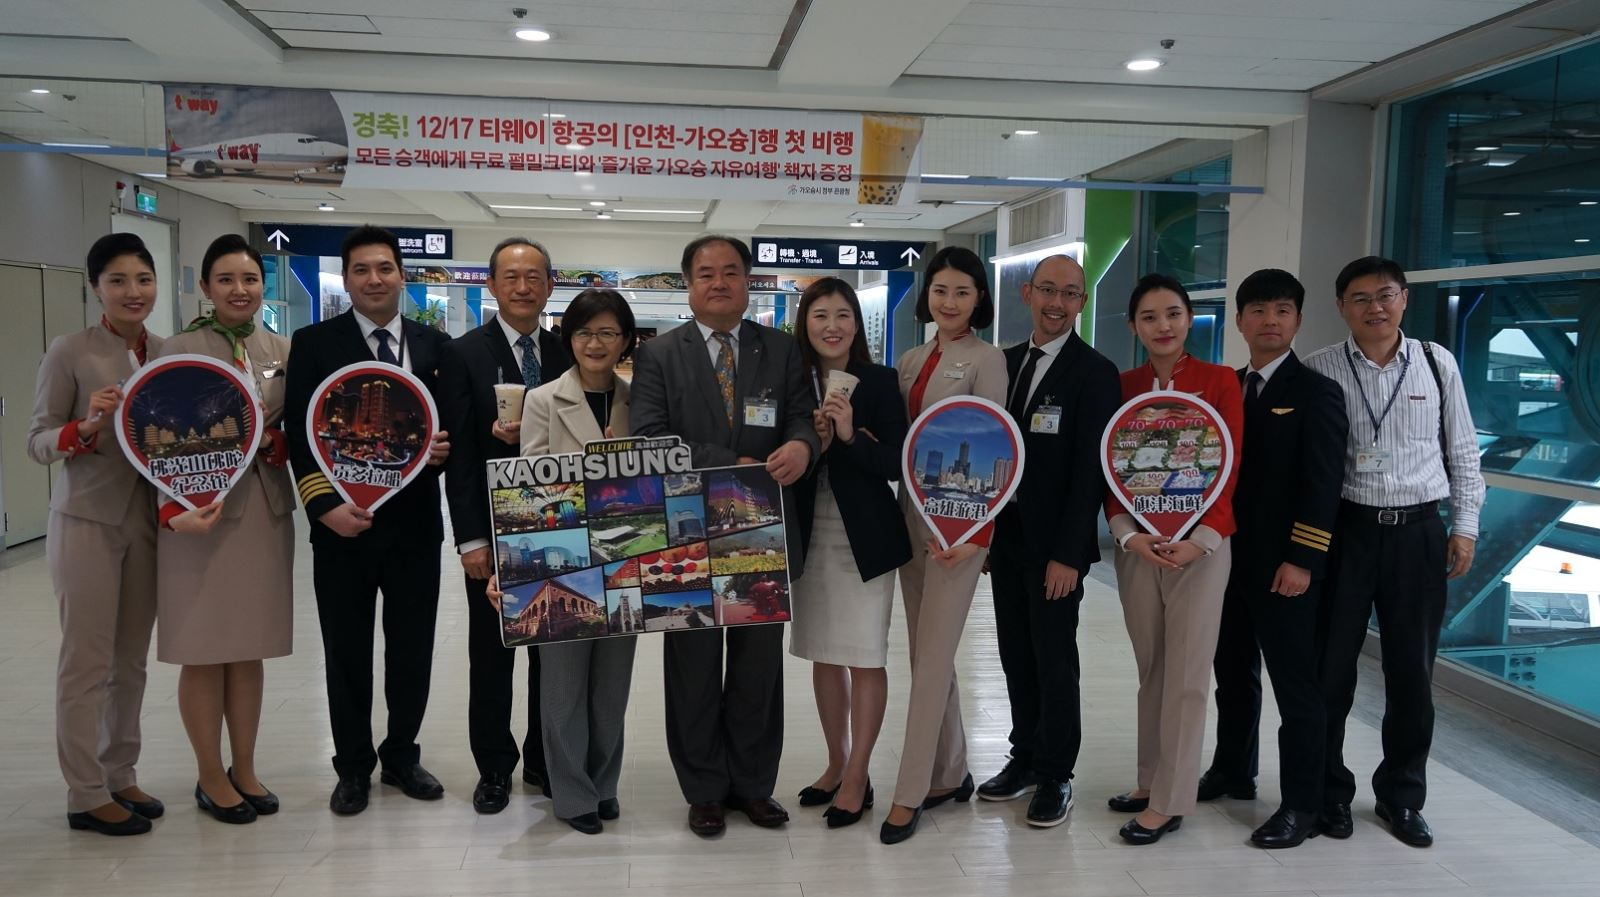 To boost tourism, Kaohsiung offers free hotel rooms for South Korean airlin...